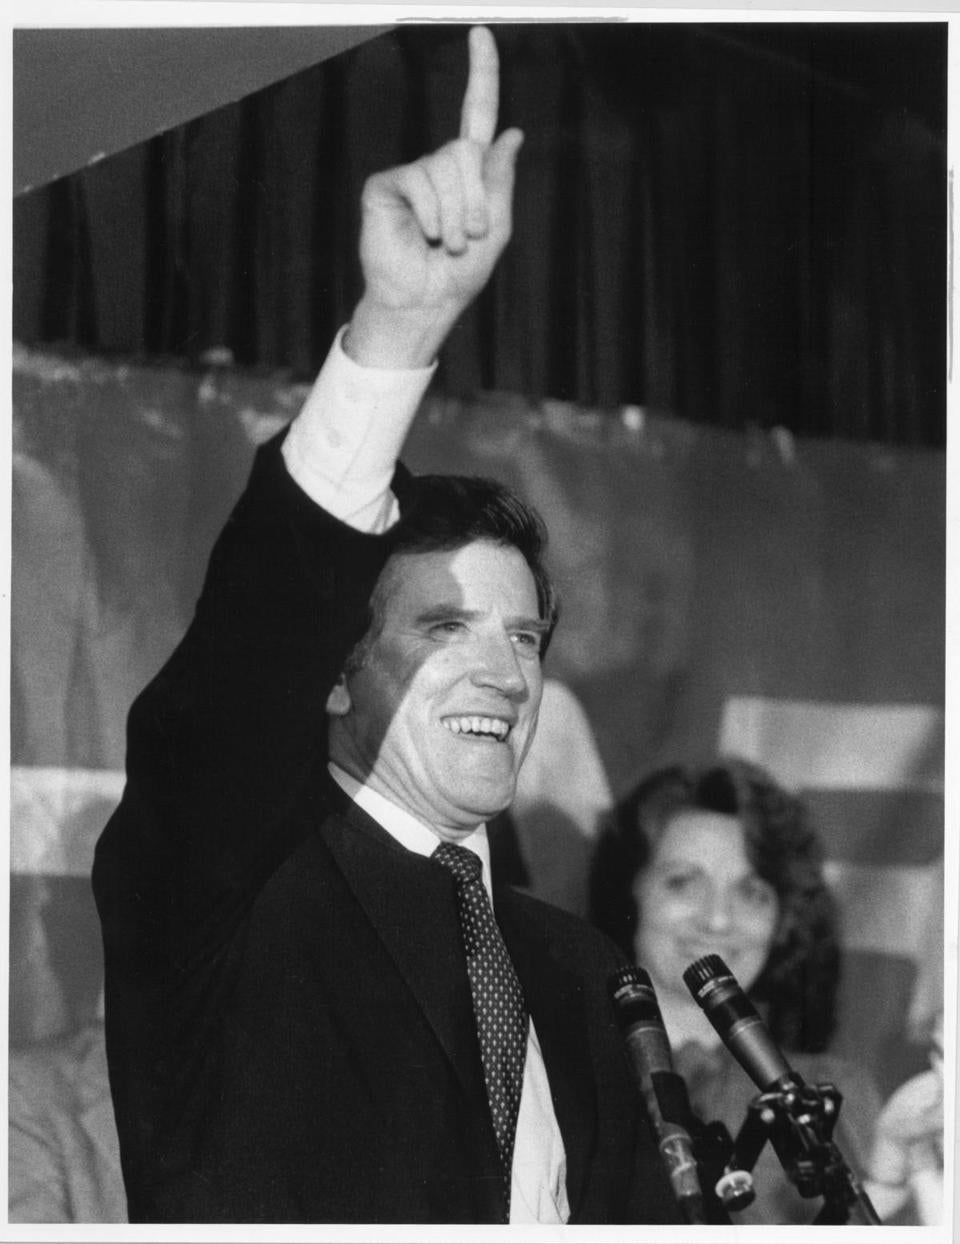 FROM MERLIN ARCHIVE DO NOT RESEND TO LIBRARY 2/28/84 Manchester,NH Sen. Gary W. Hart gestures at a victory celebration in Manchester after the New Hampshire primary. library tag 02062000 focus Library Tag 03062007 National/Foreign Page One nhprimarystaff